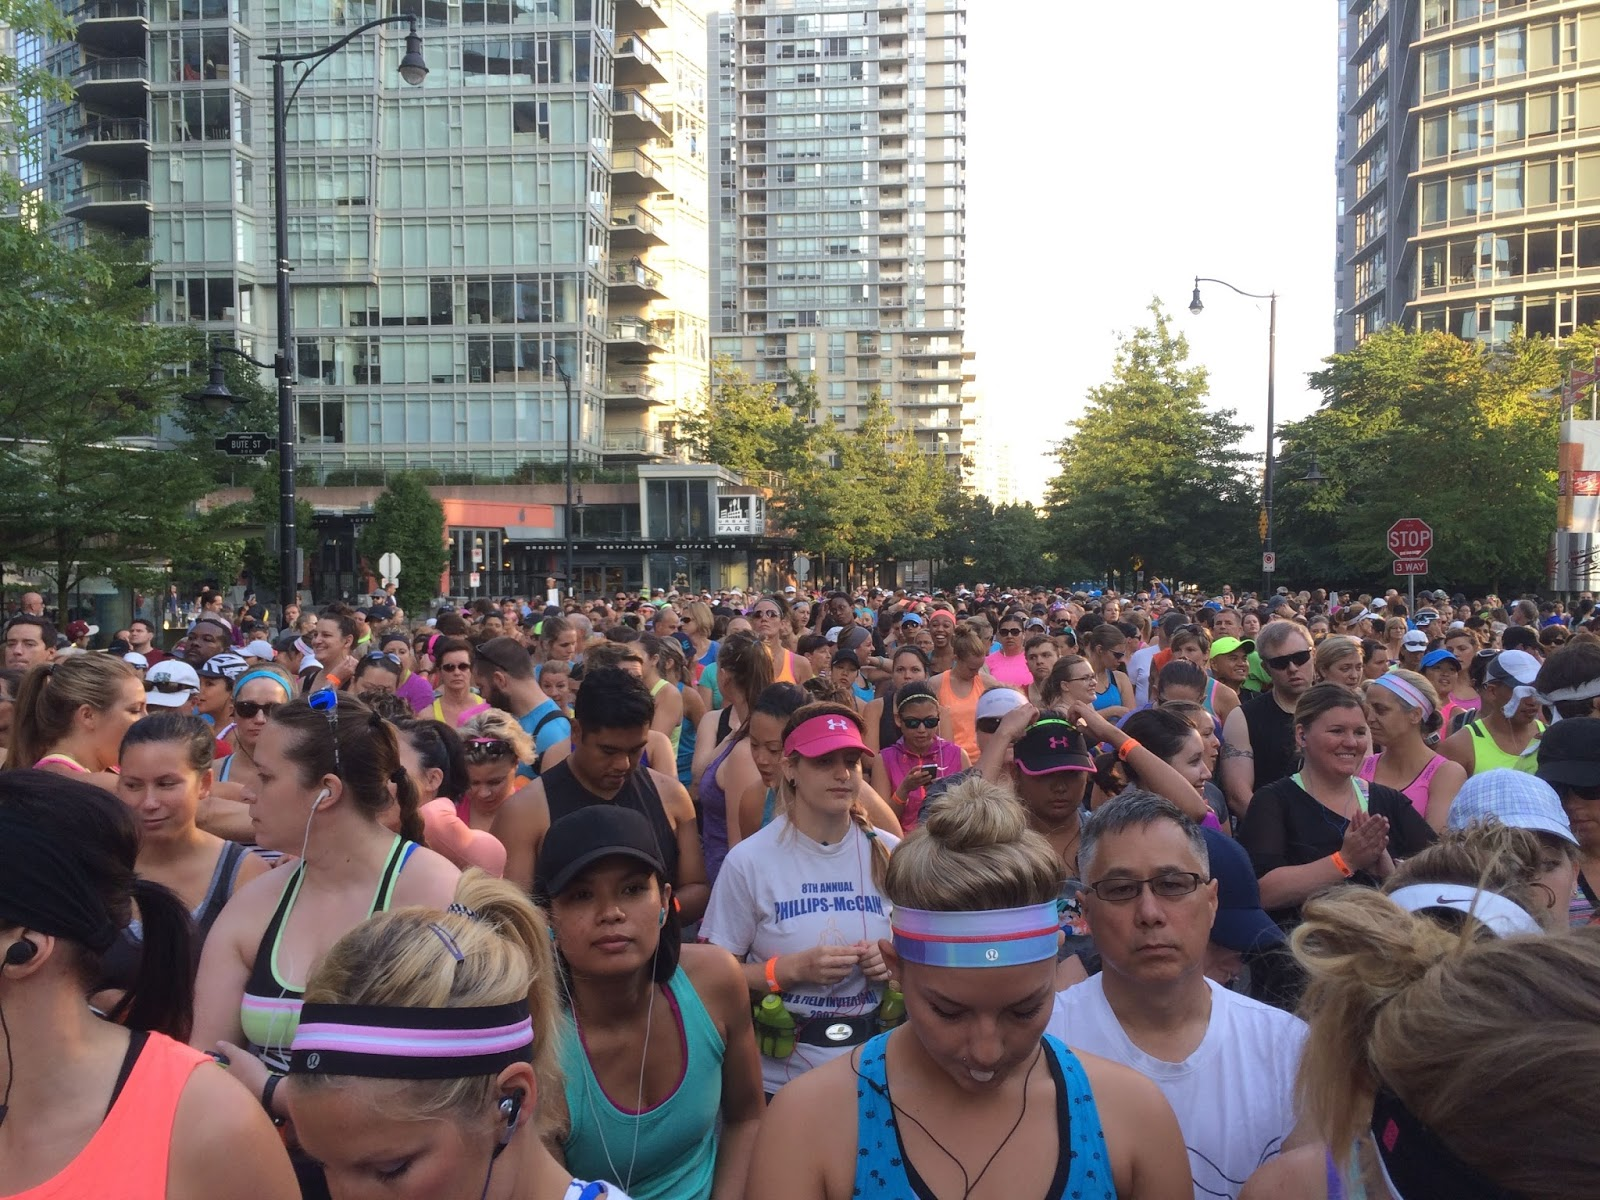 lululemon 2014 Sea Wheeze half marathon start corral